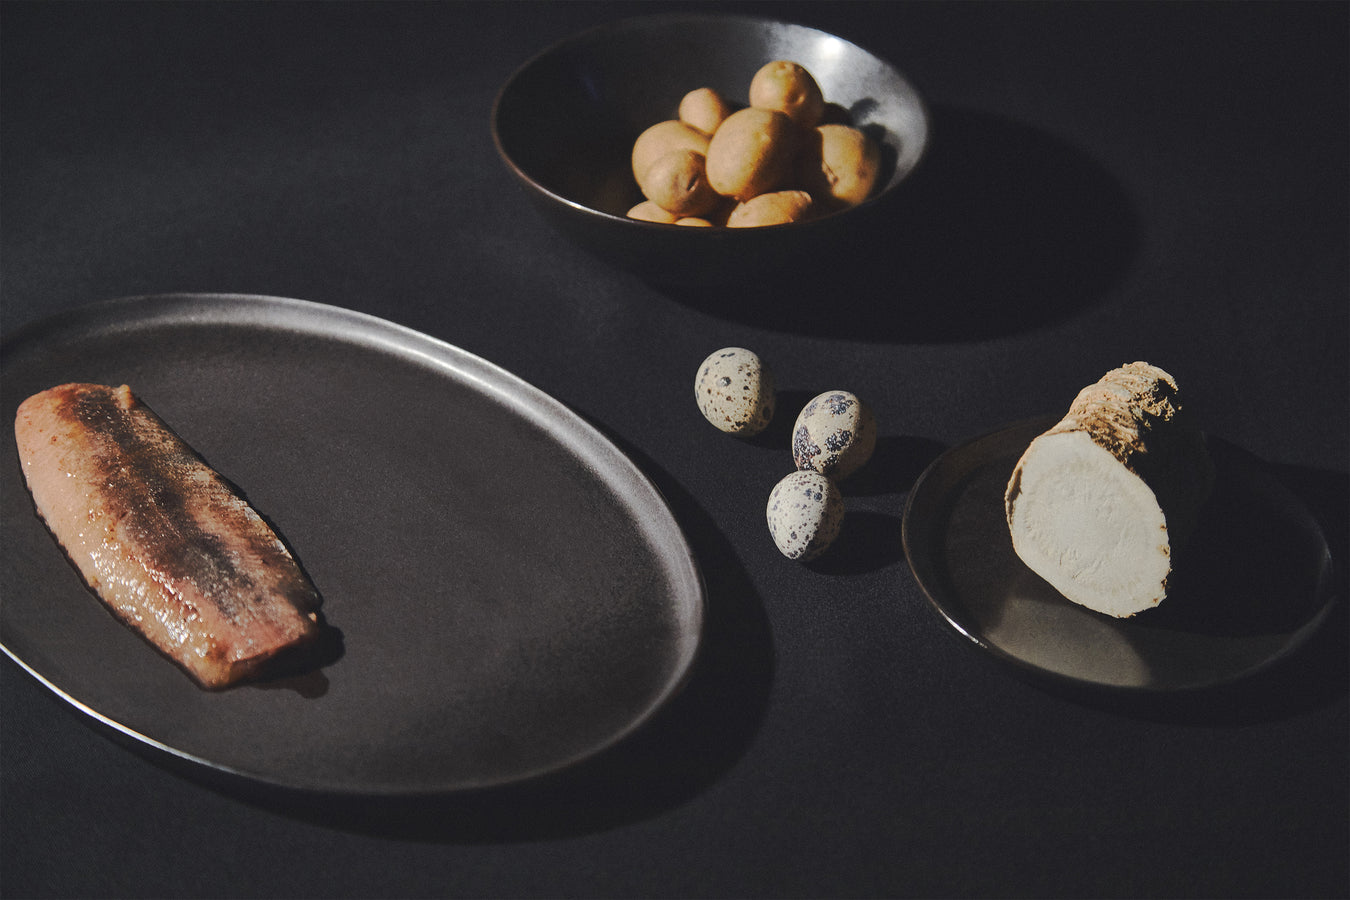 Nordic Noël: A Swedish-Inspired Holiday Menu by Fredrik Berselius of Aska